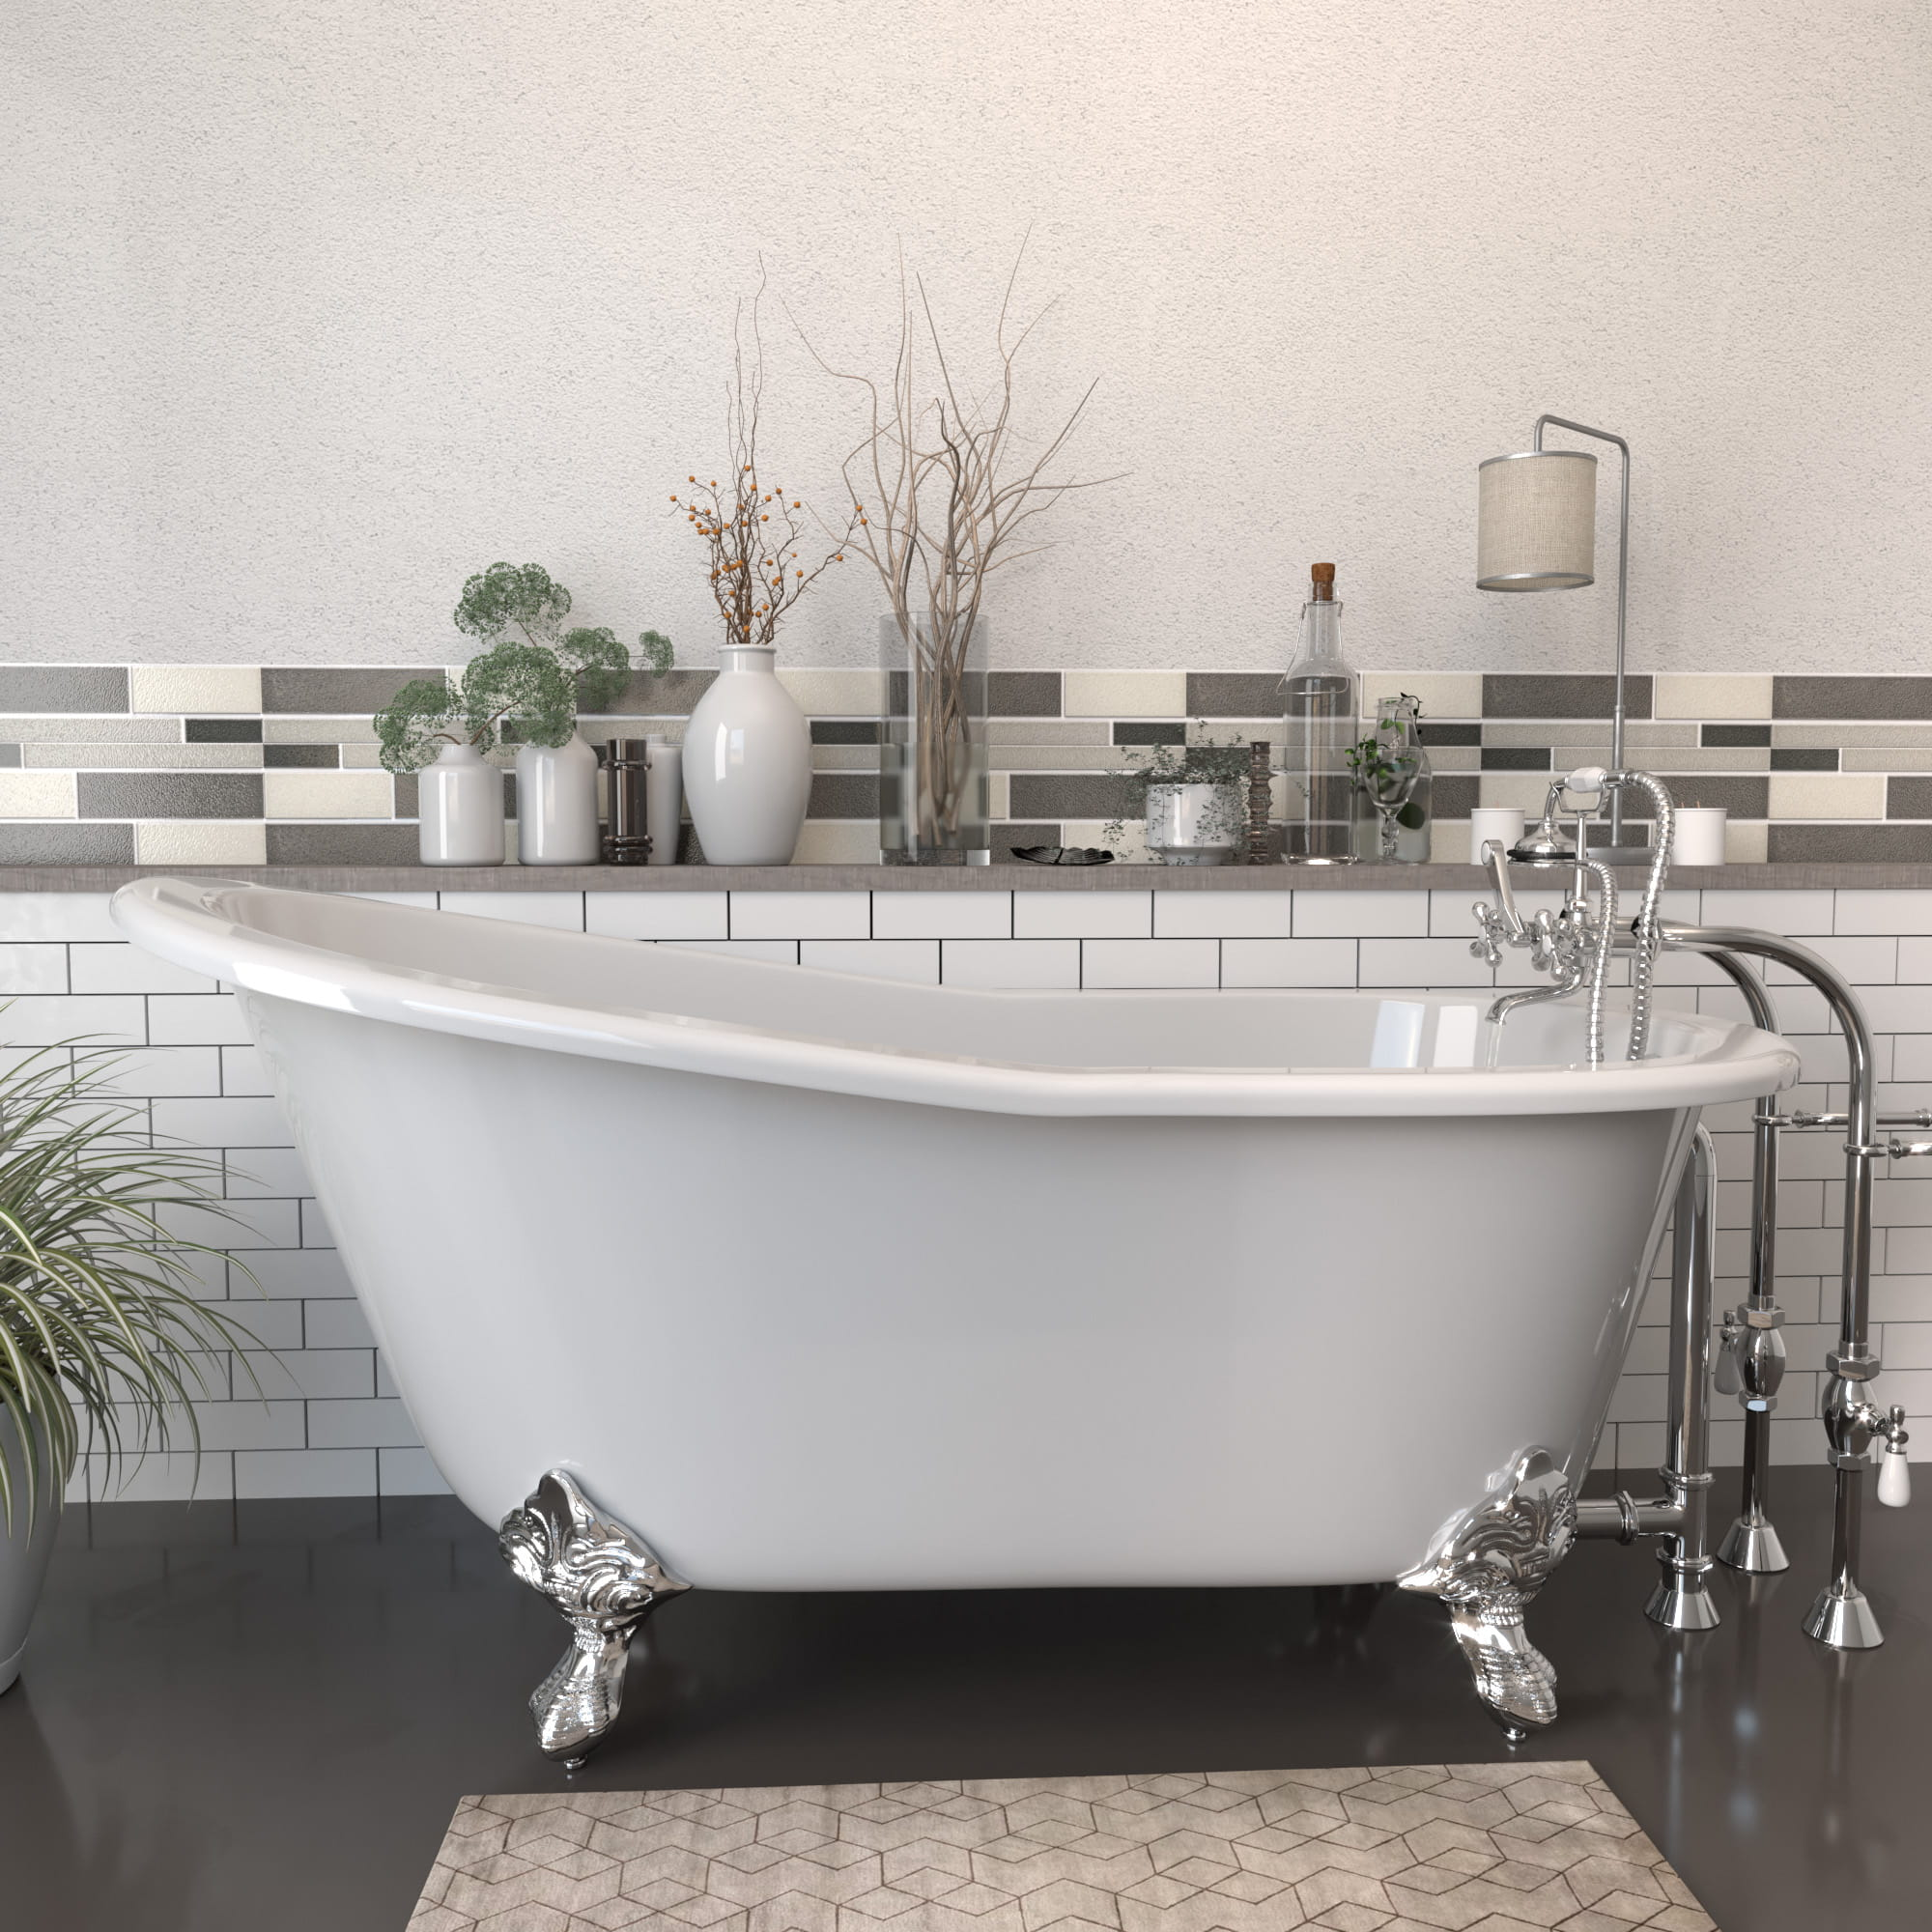 """Cast Iron Slipper Clawfoot Tub 61"""" X 30"""" with No Faucet Drillings and Complete Free Standing British Telephone Faucet and Hand Held Shower  Polished Chrome Package"""